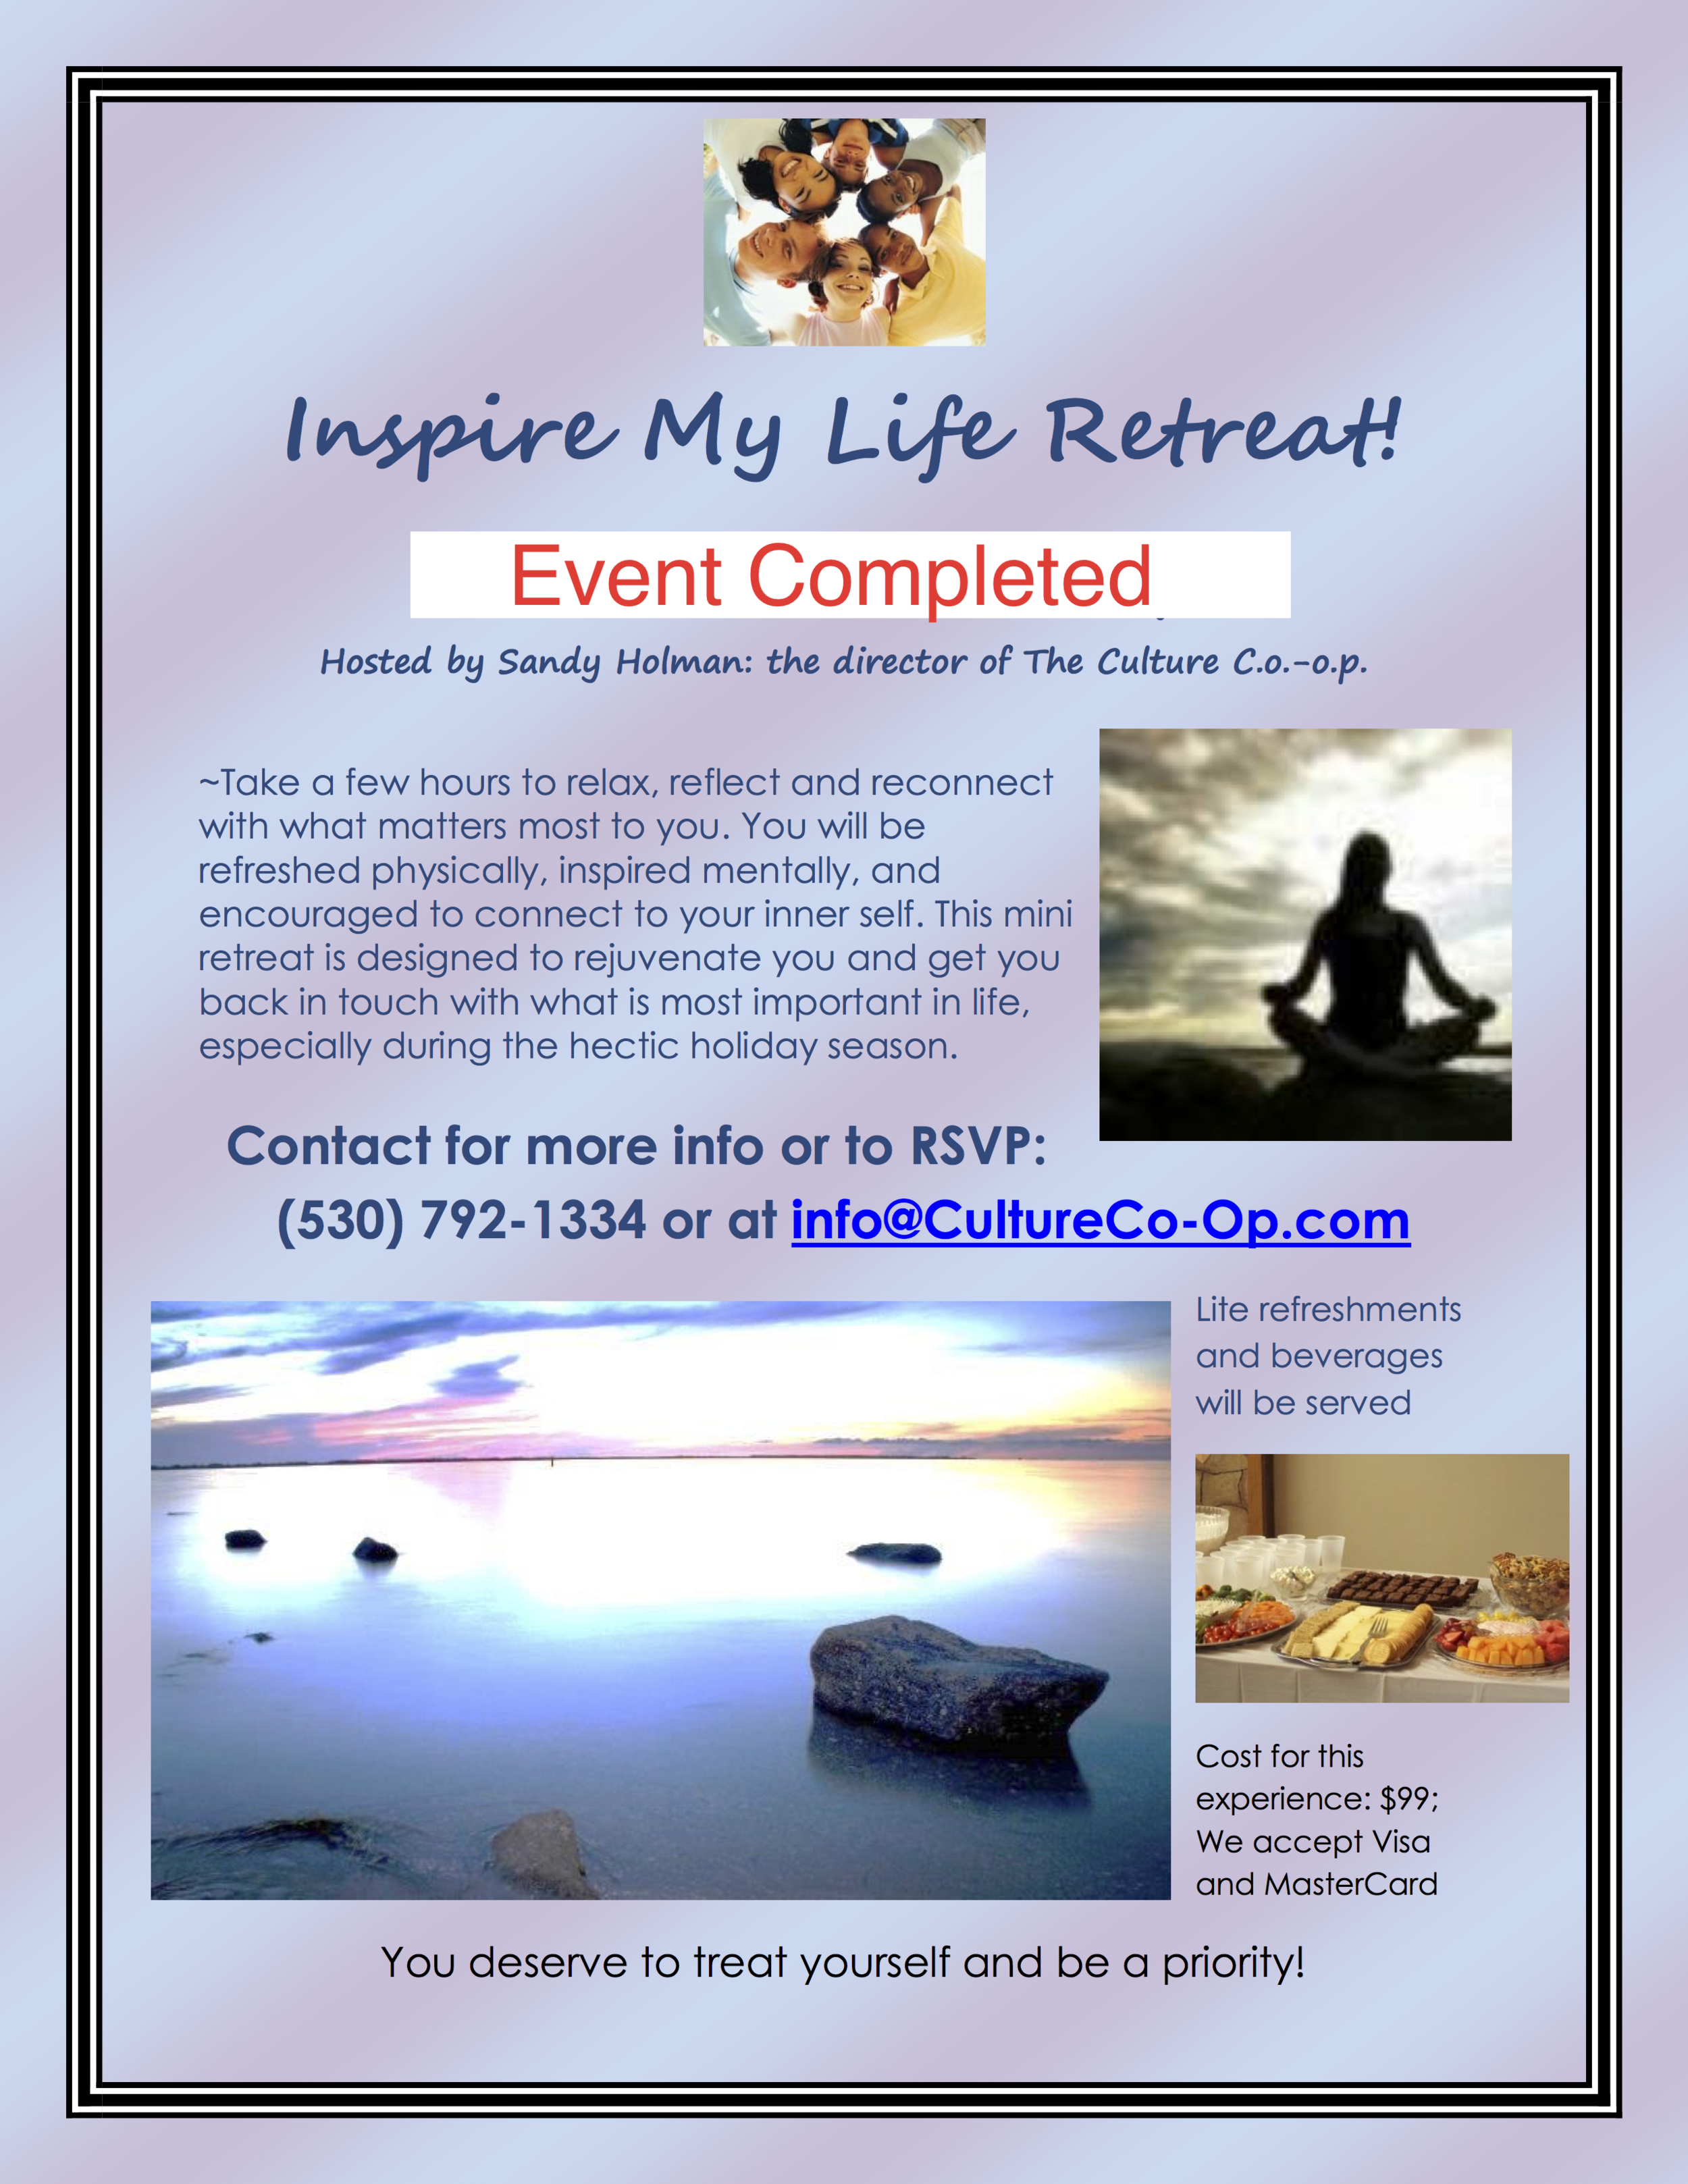 Inspire My Life Retreat Flyer Version 2.png